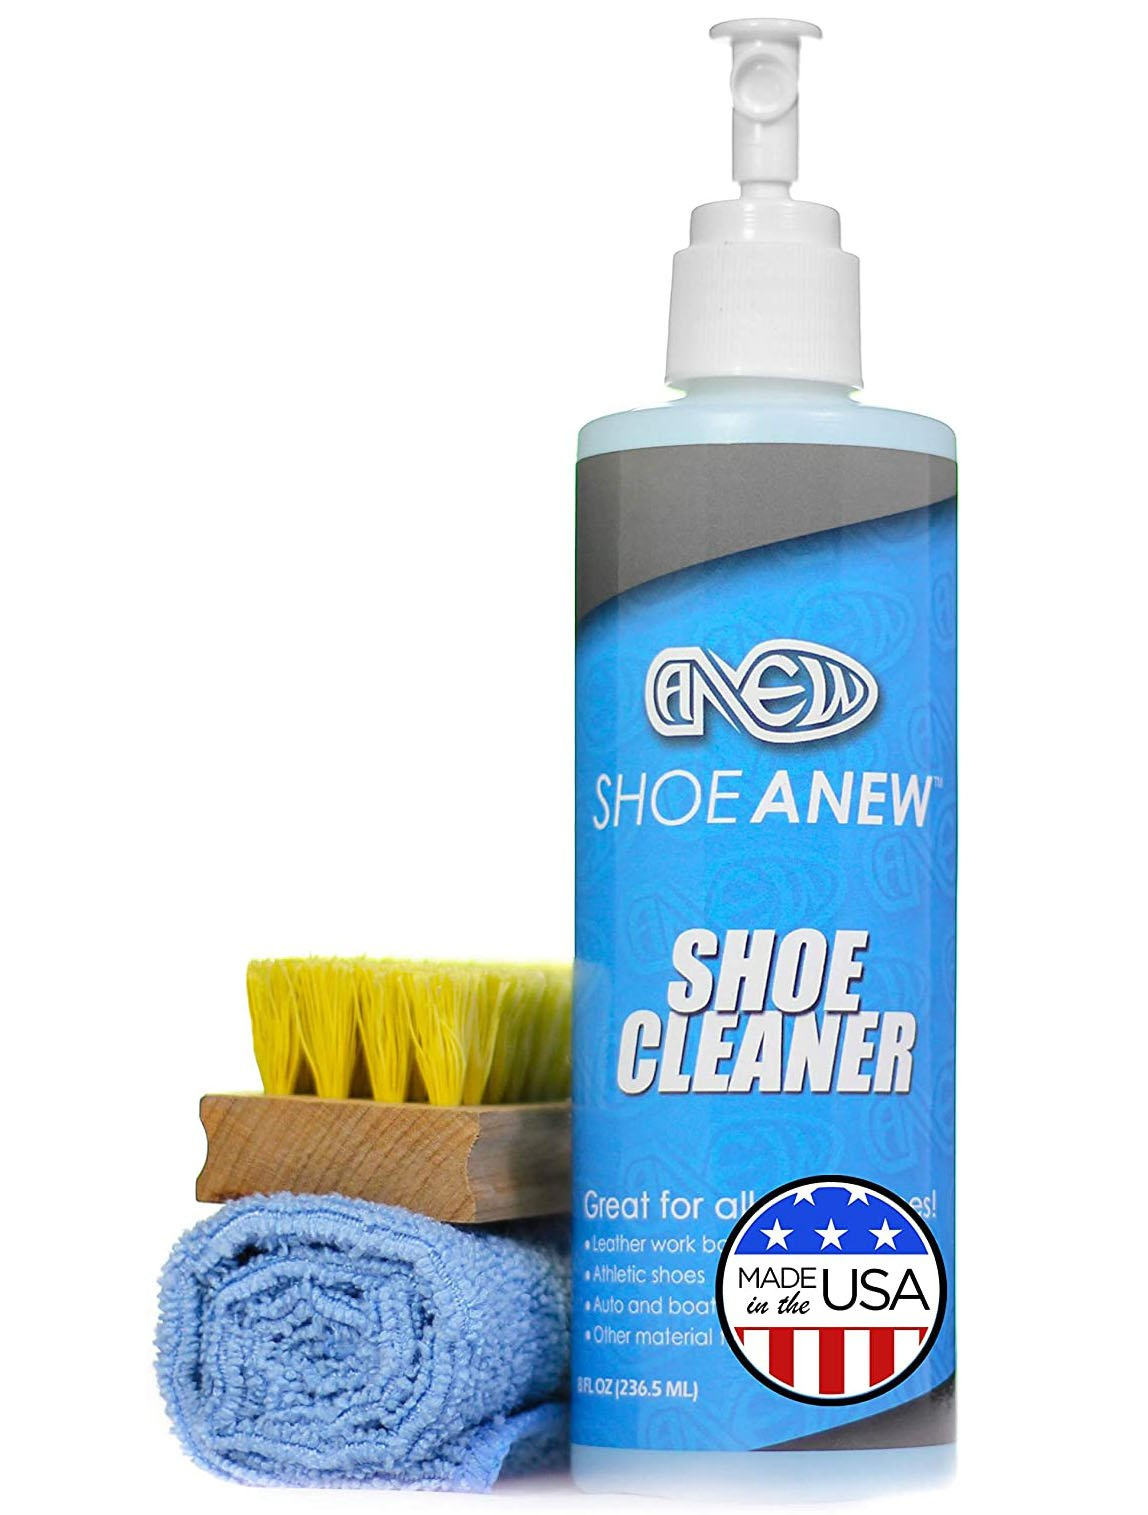 ShoeAnew's shoe cleaner kit is easy-to-use, environment-friendly, and perfect for all types of shoe materials